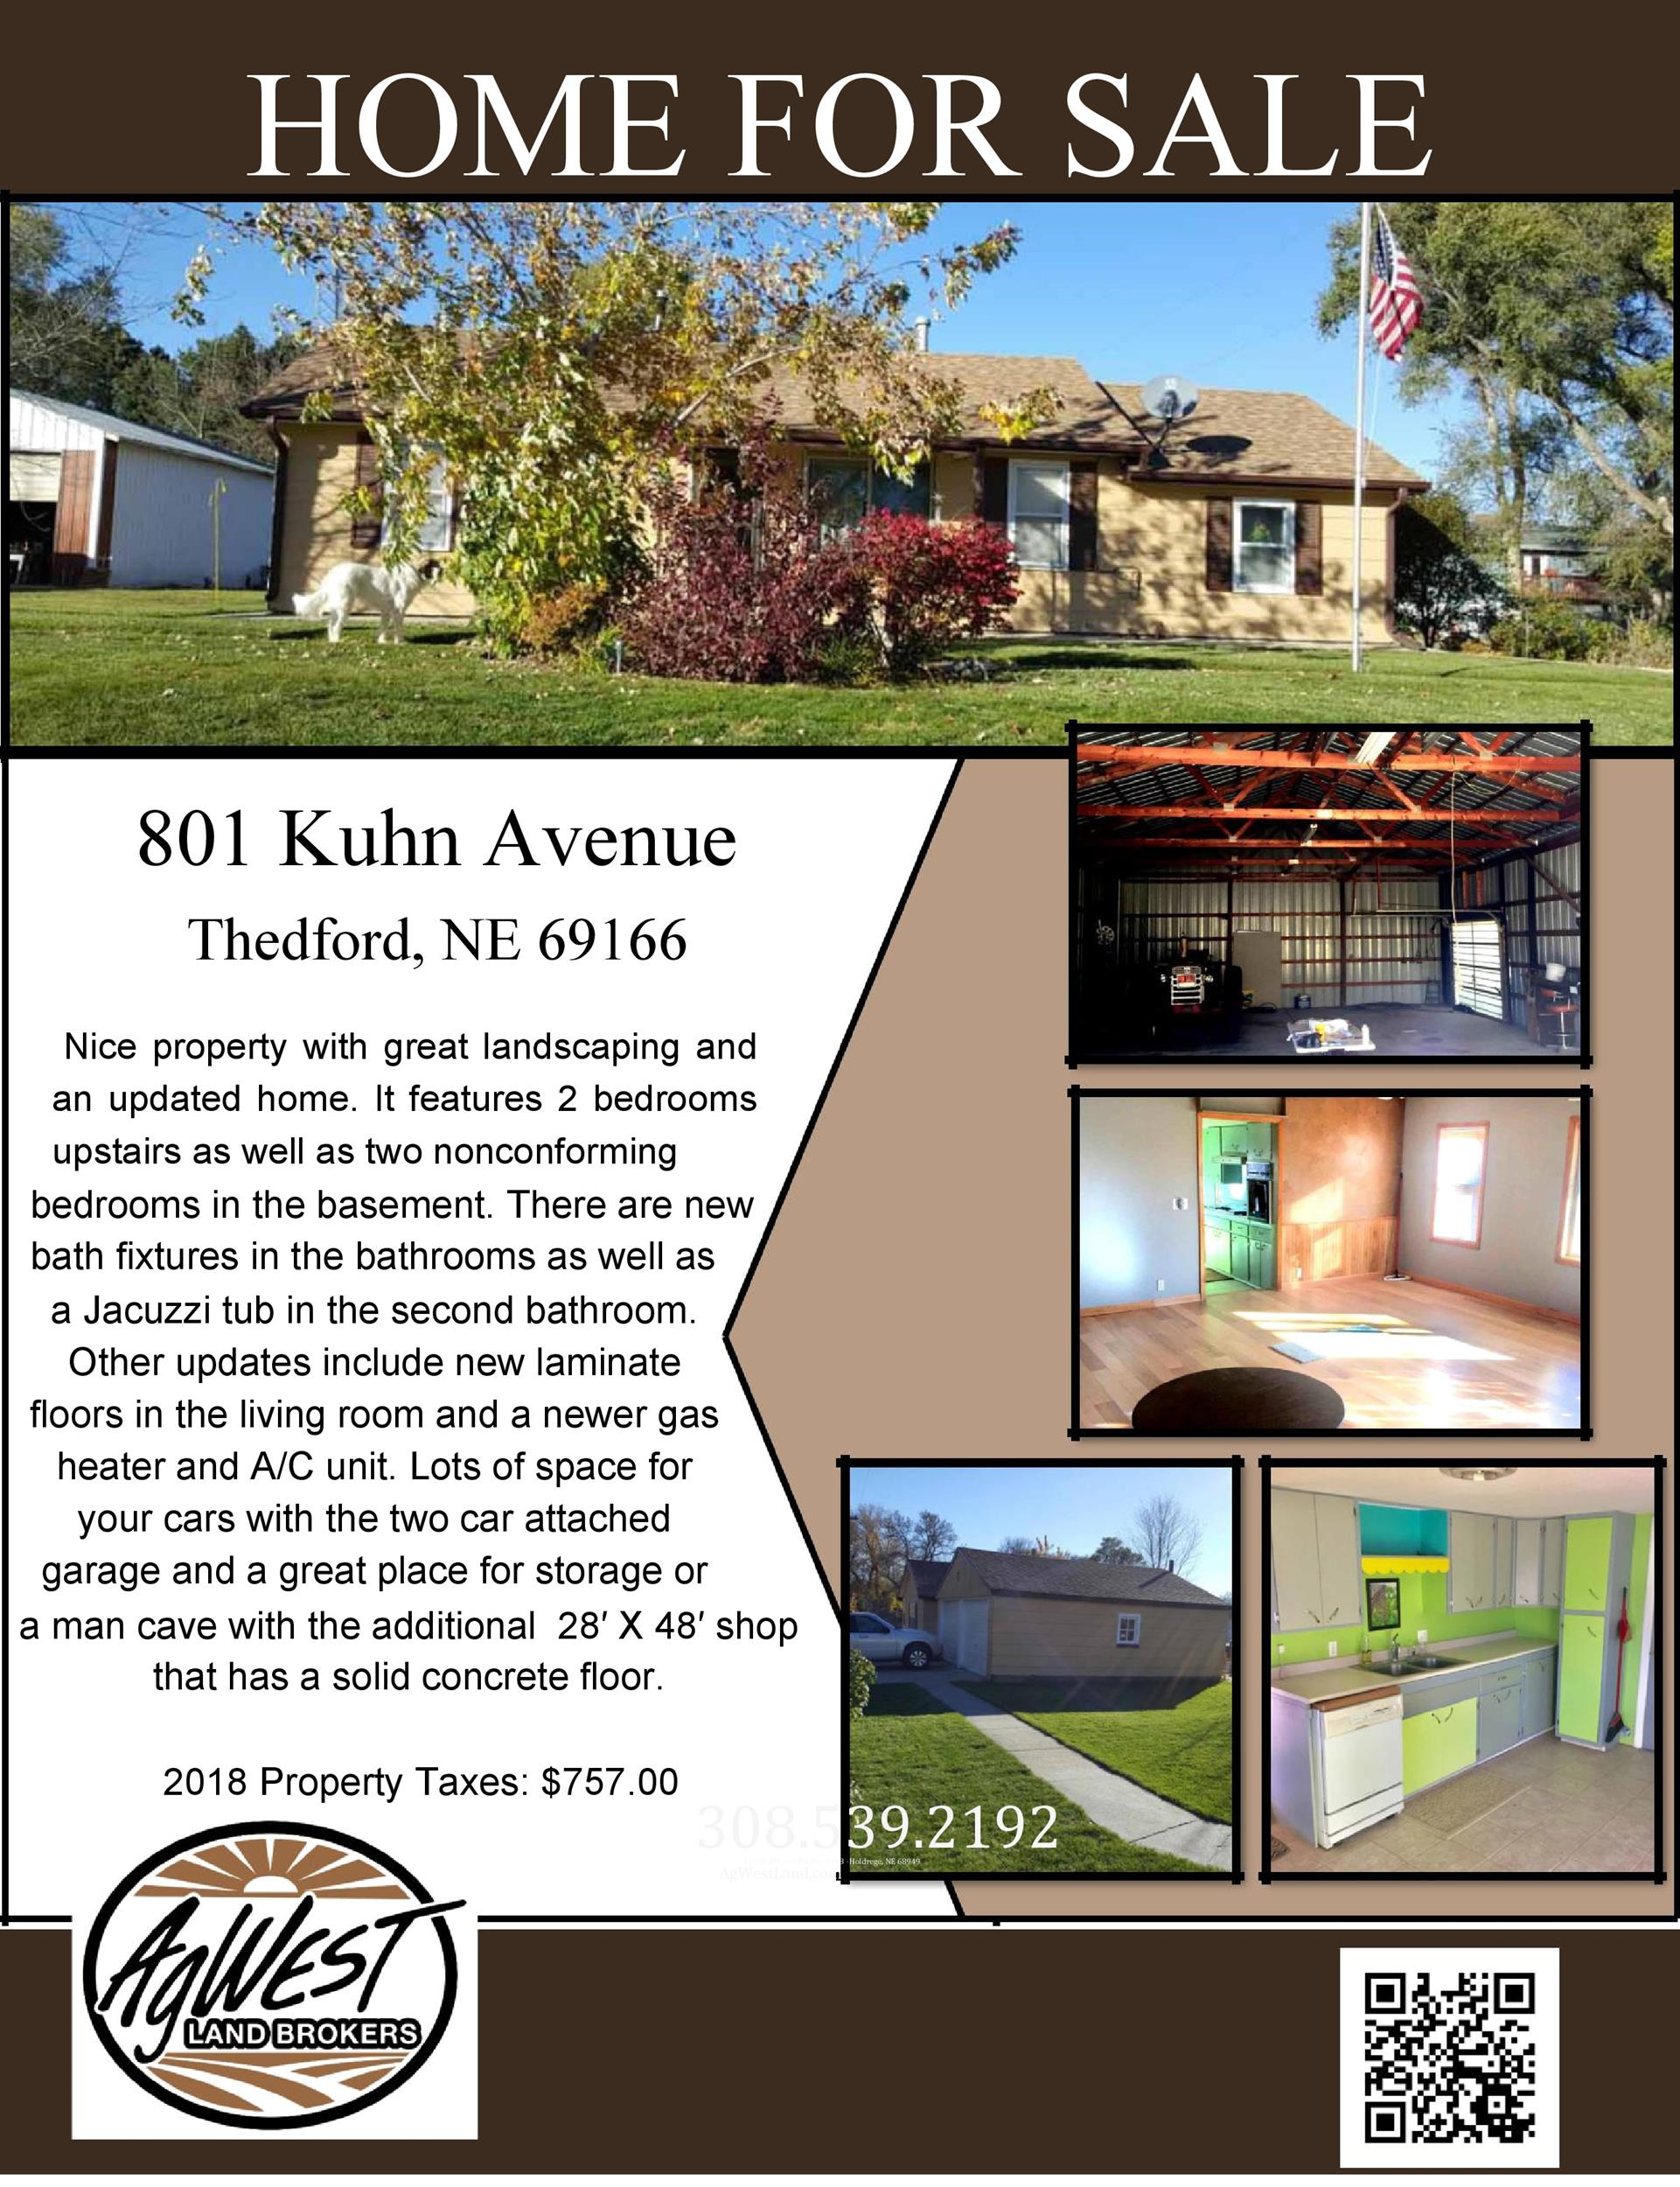 47 amazing house for sale flyers  100  free   u1405 templatelab